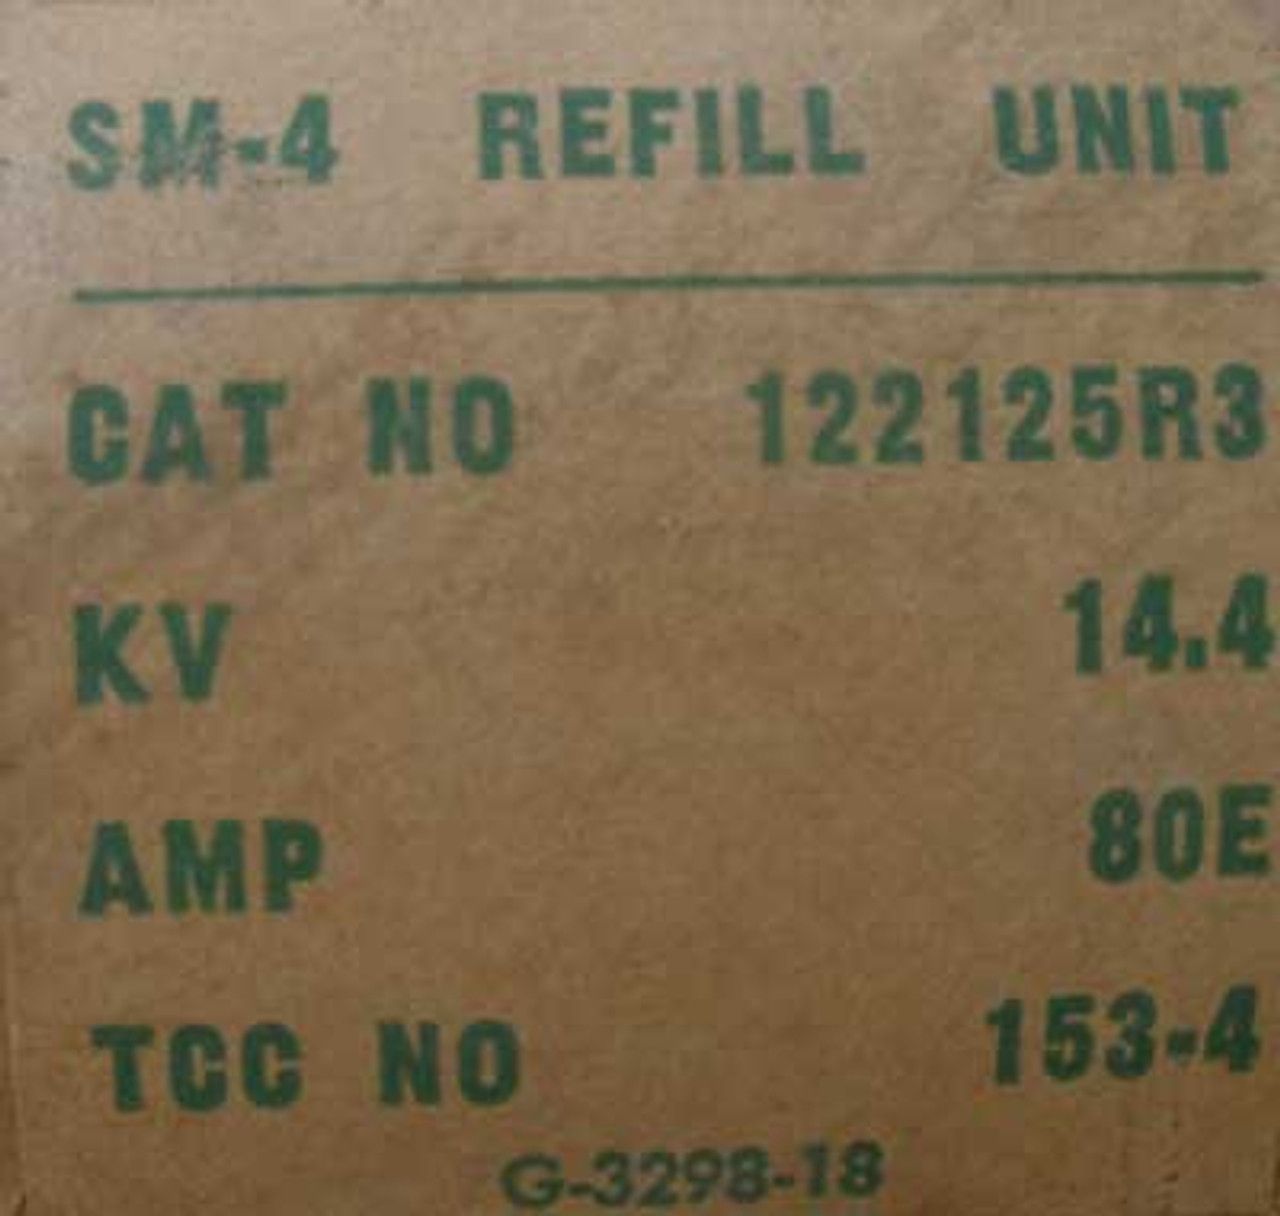 S&C 122125R3 SM4 14.4 KV 80E Fuse Refill Unit - New